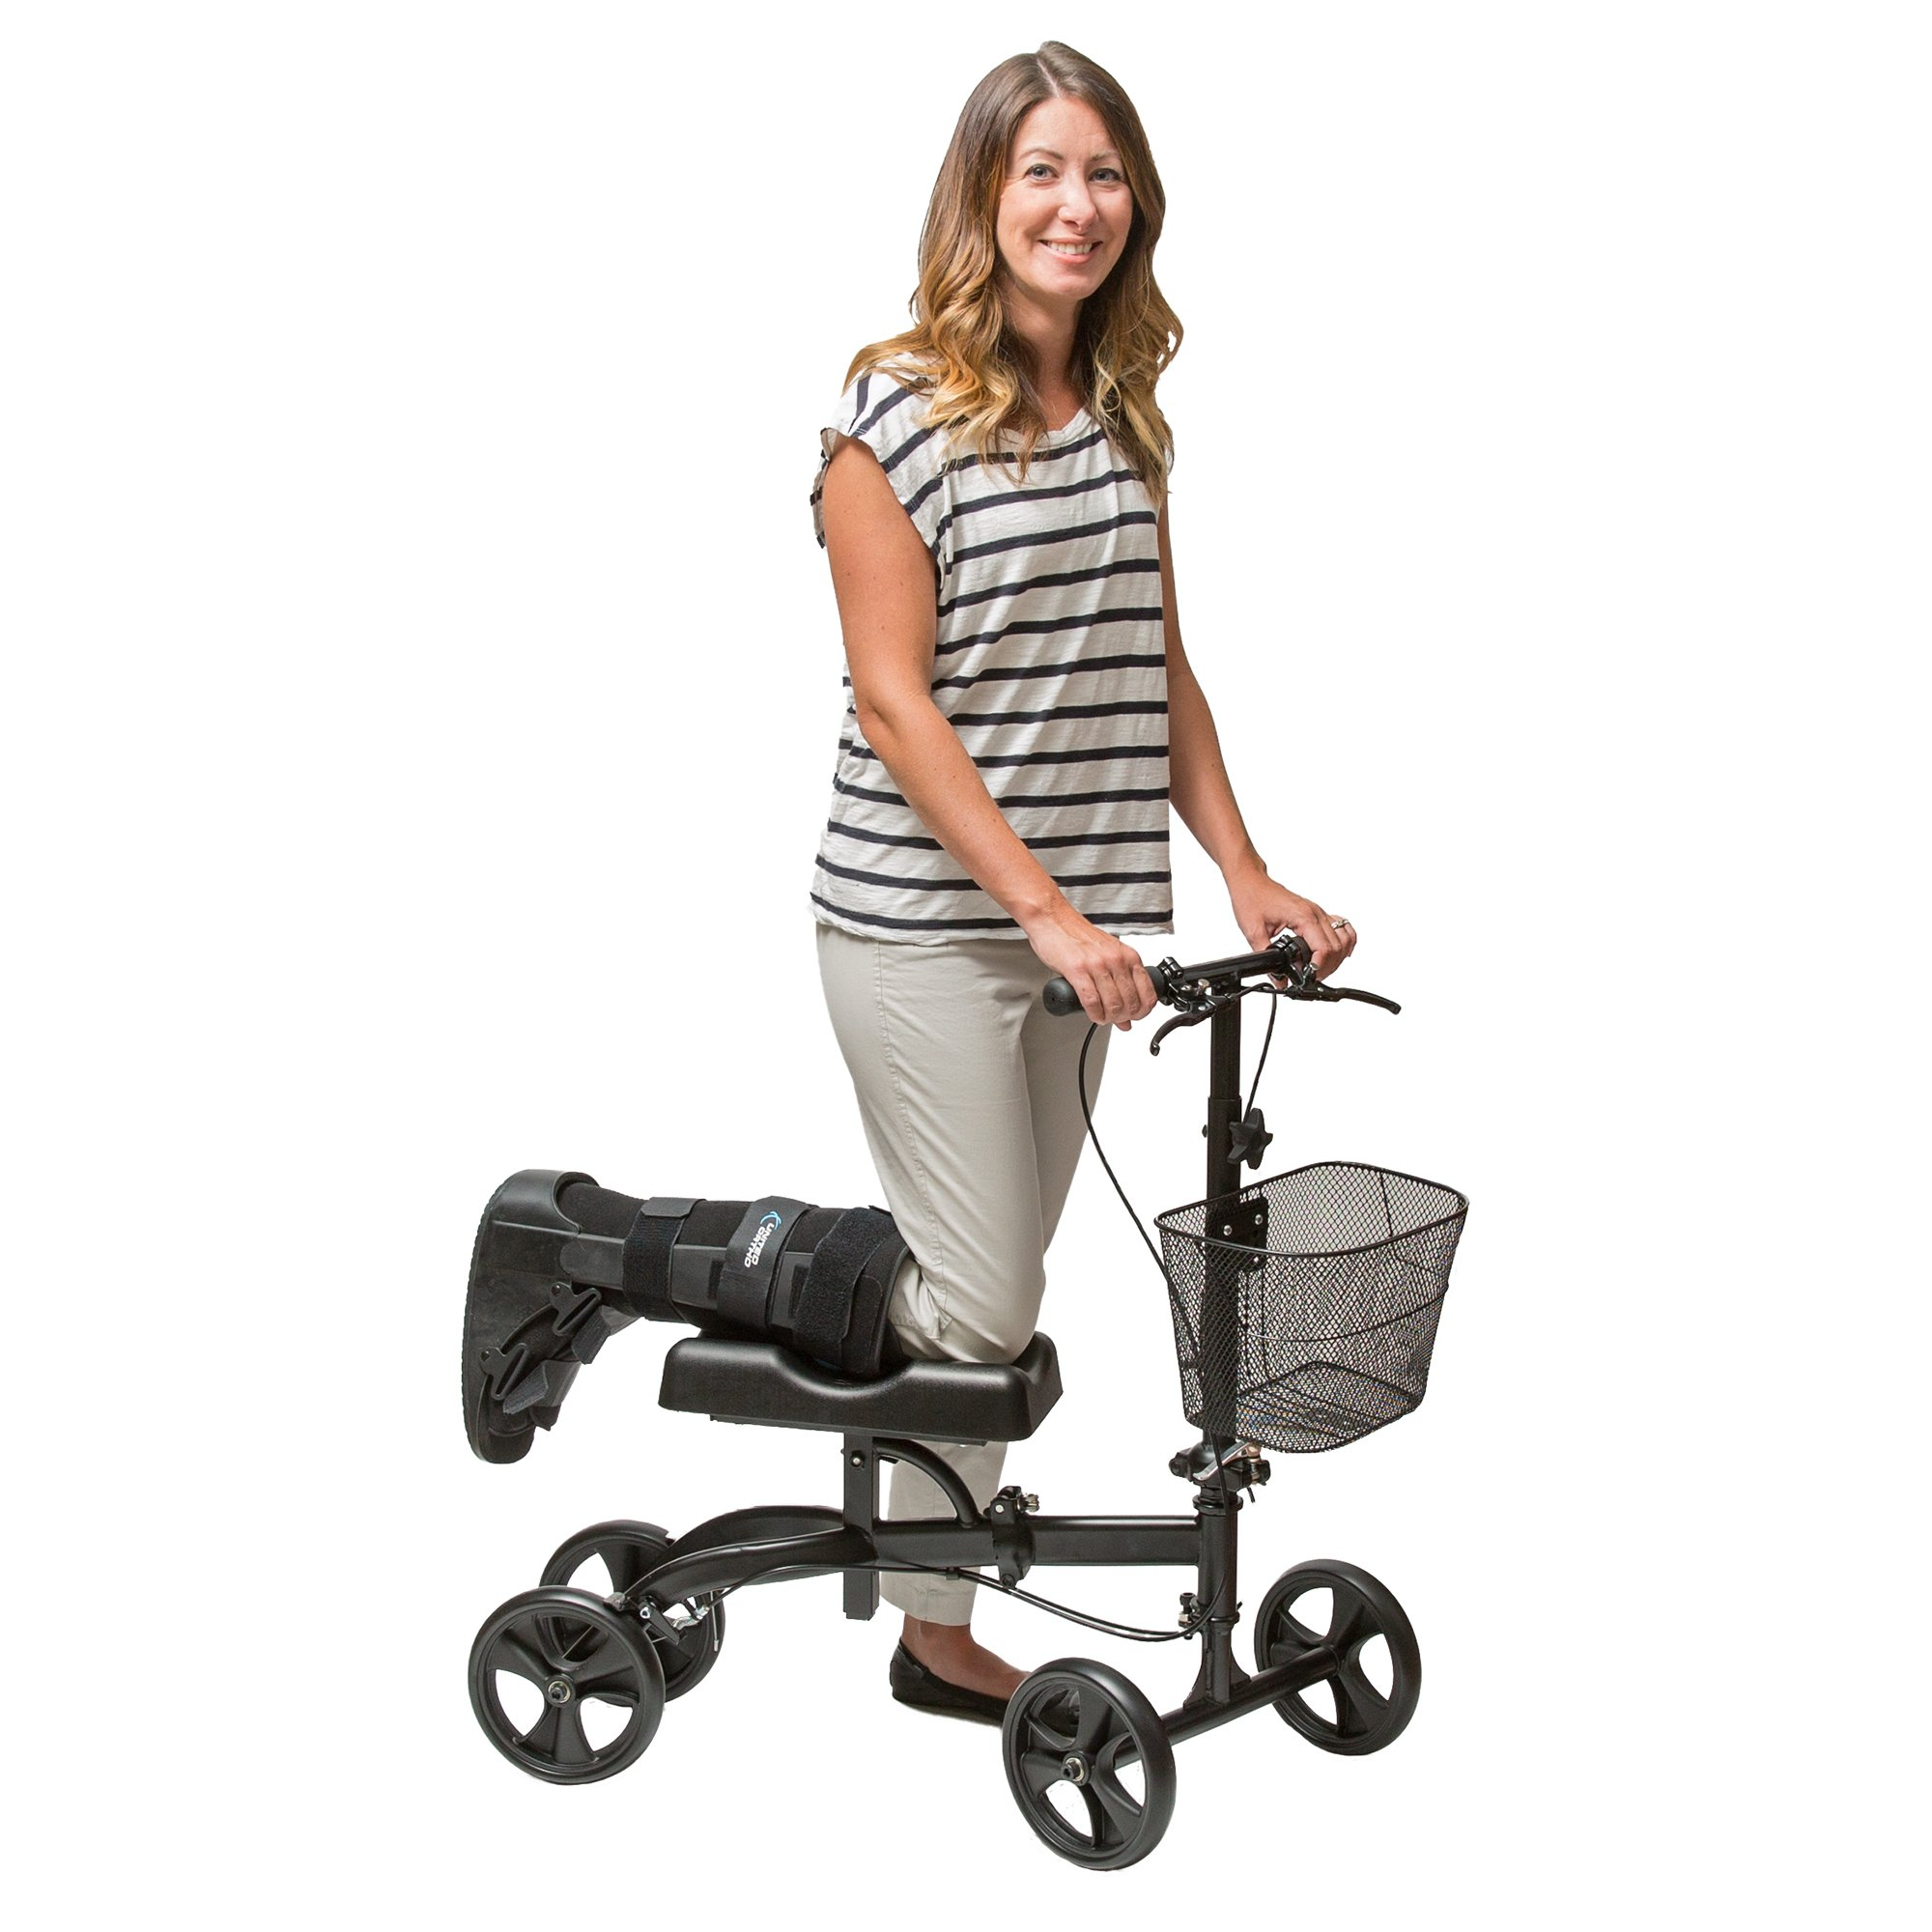 Healthport Knee Walker | Steerable Knees Scooter for Foot Injuries | Folding, Dual Breaks, Parking Mechanism | Increased Turning Radius for Indoor & Outdoor | Matte Black, Compact Crutches Alternative